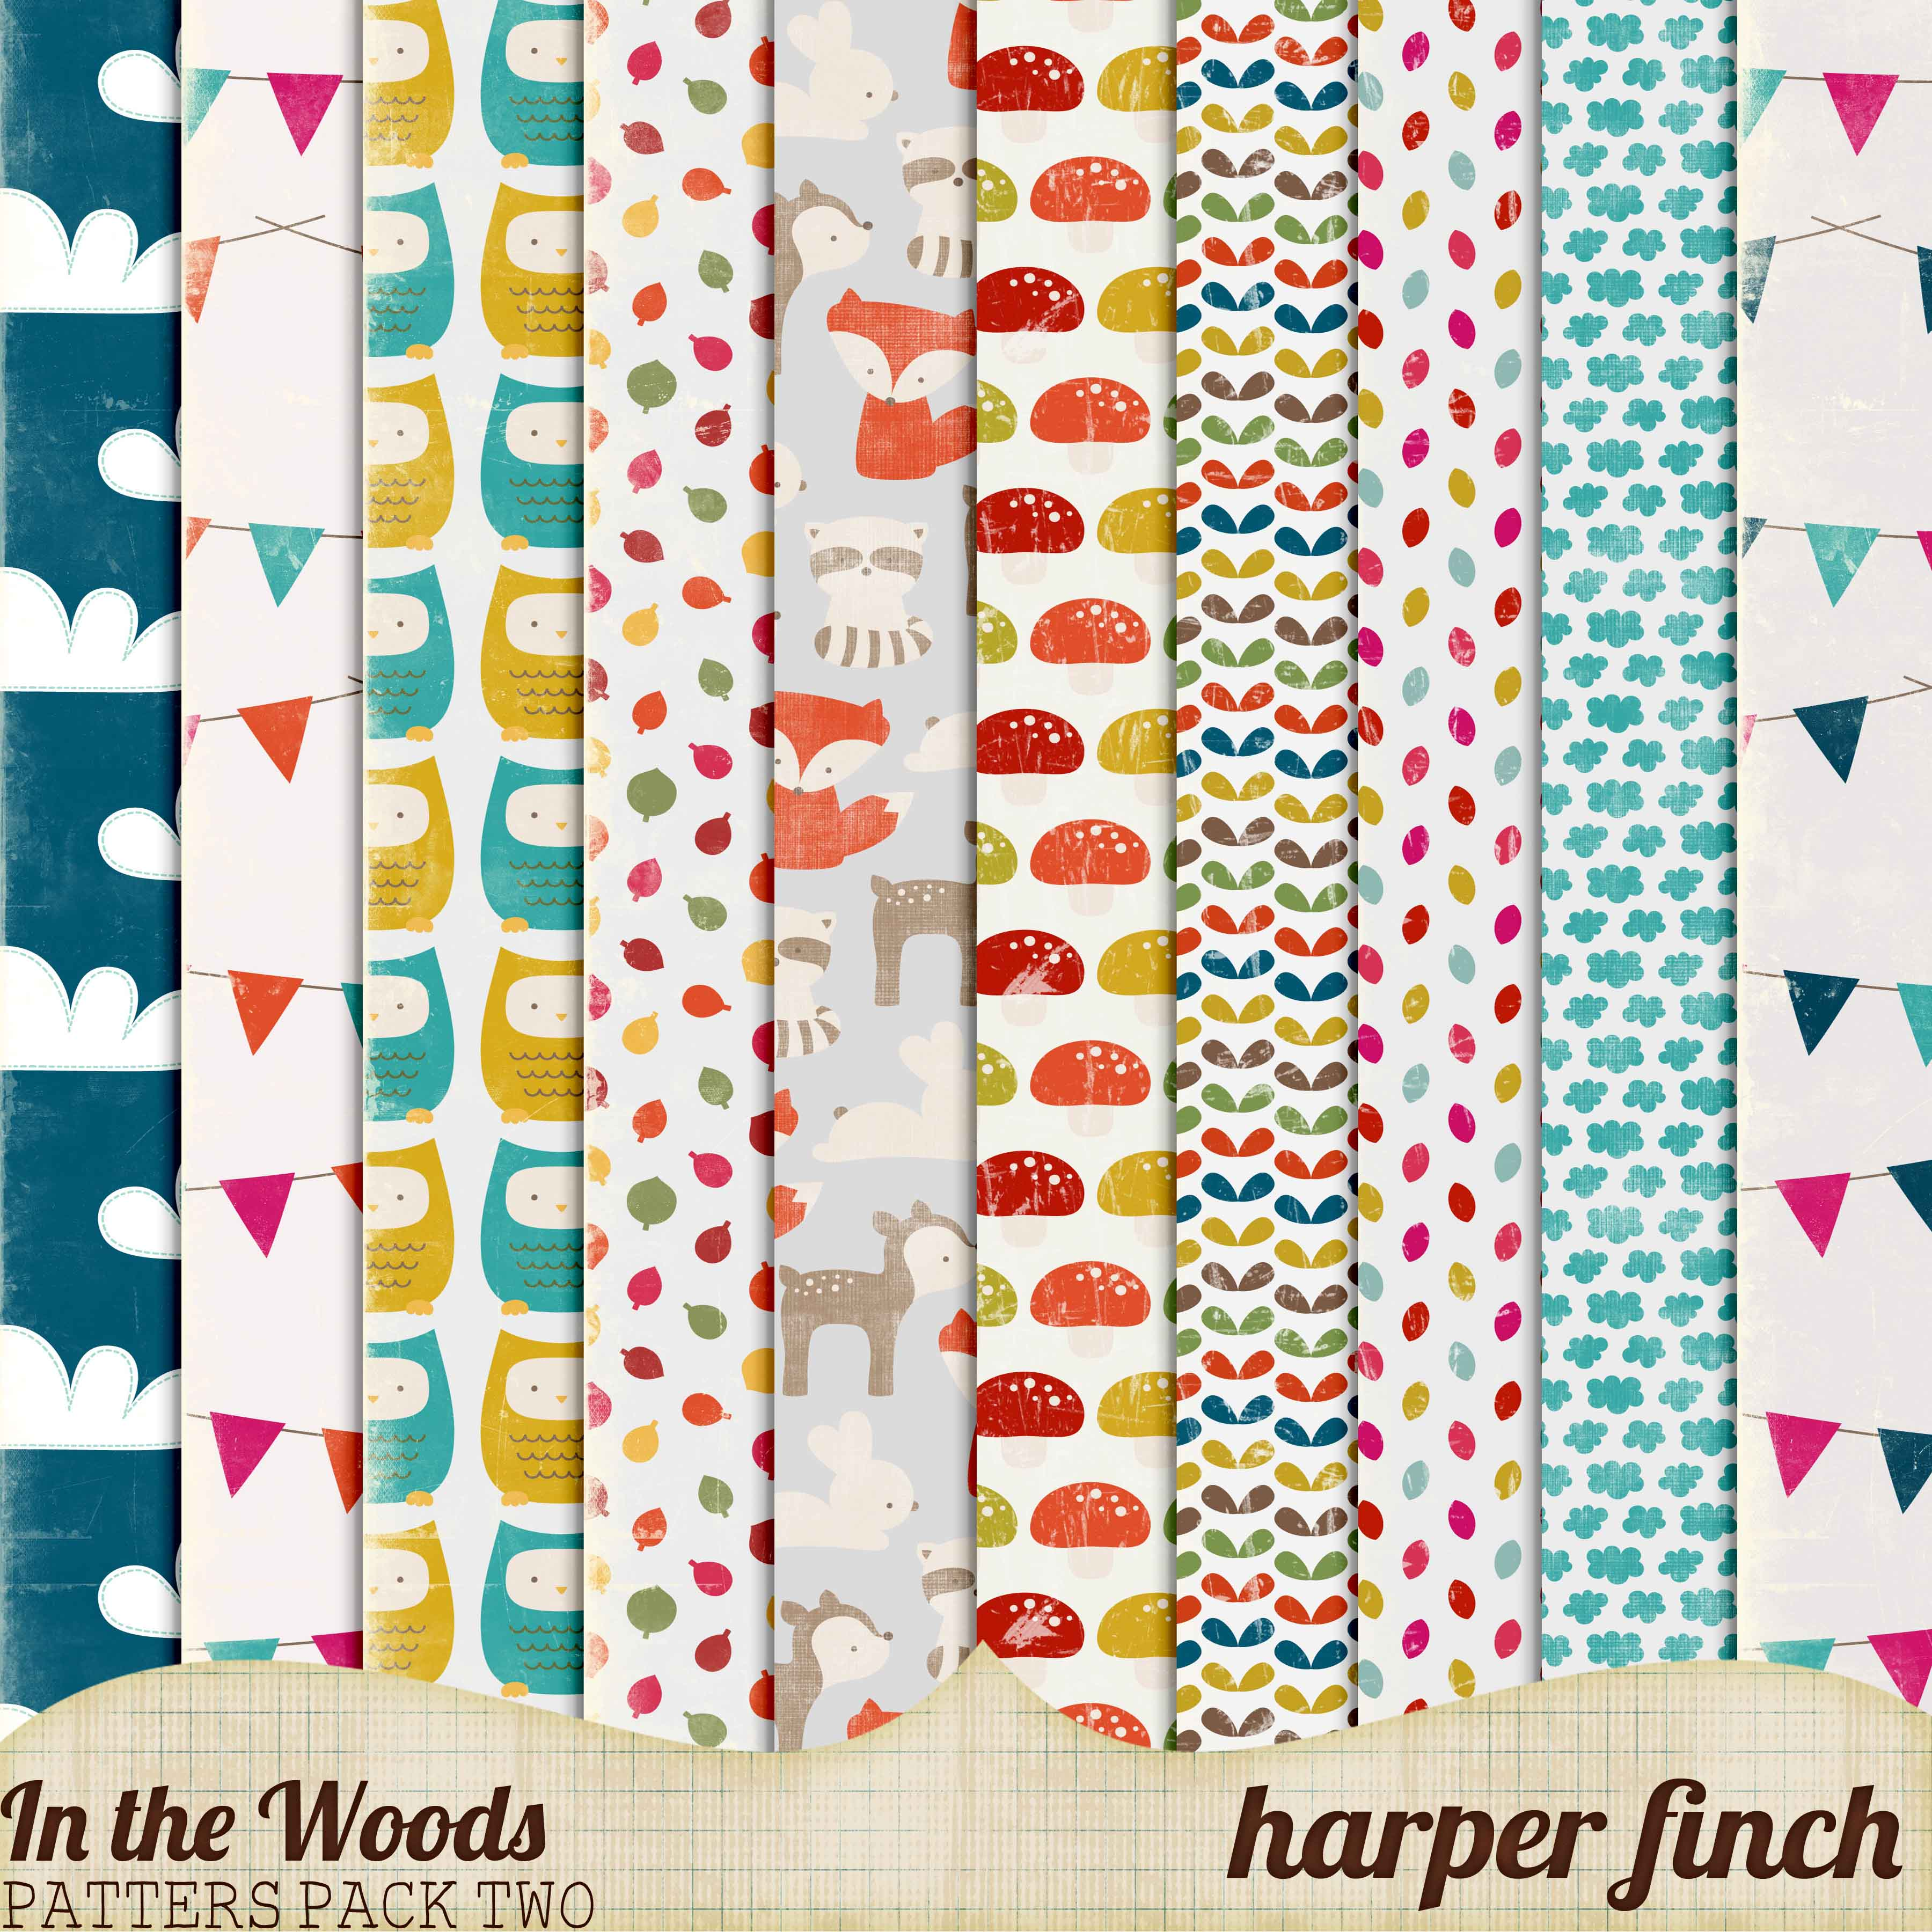 In the Woods Patterns Pack Two by Harper Finch